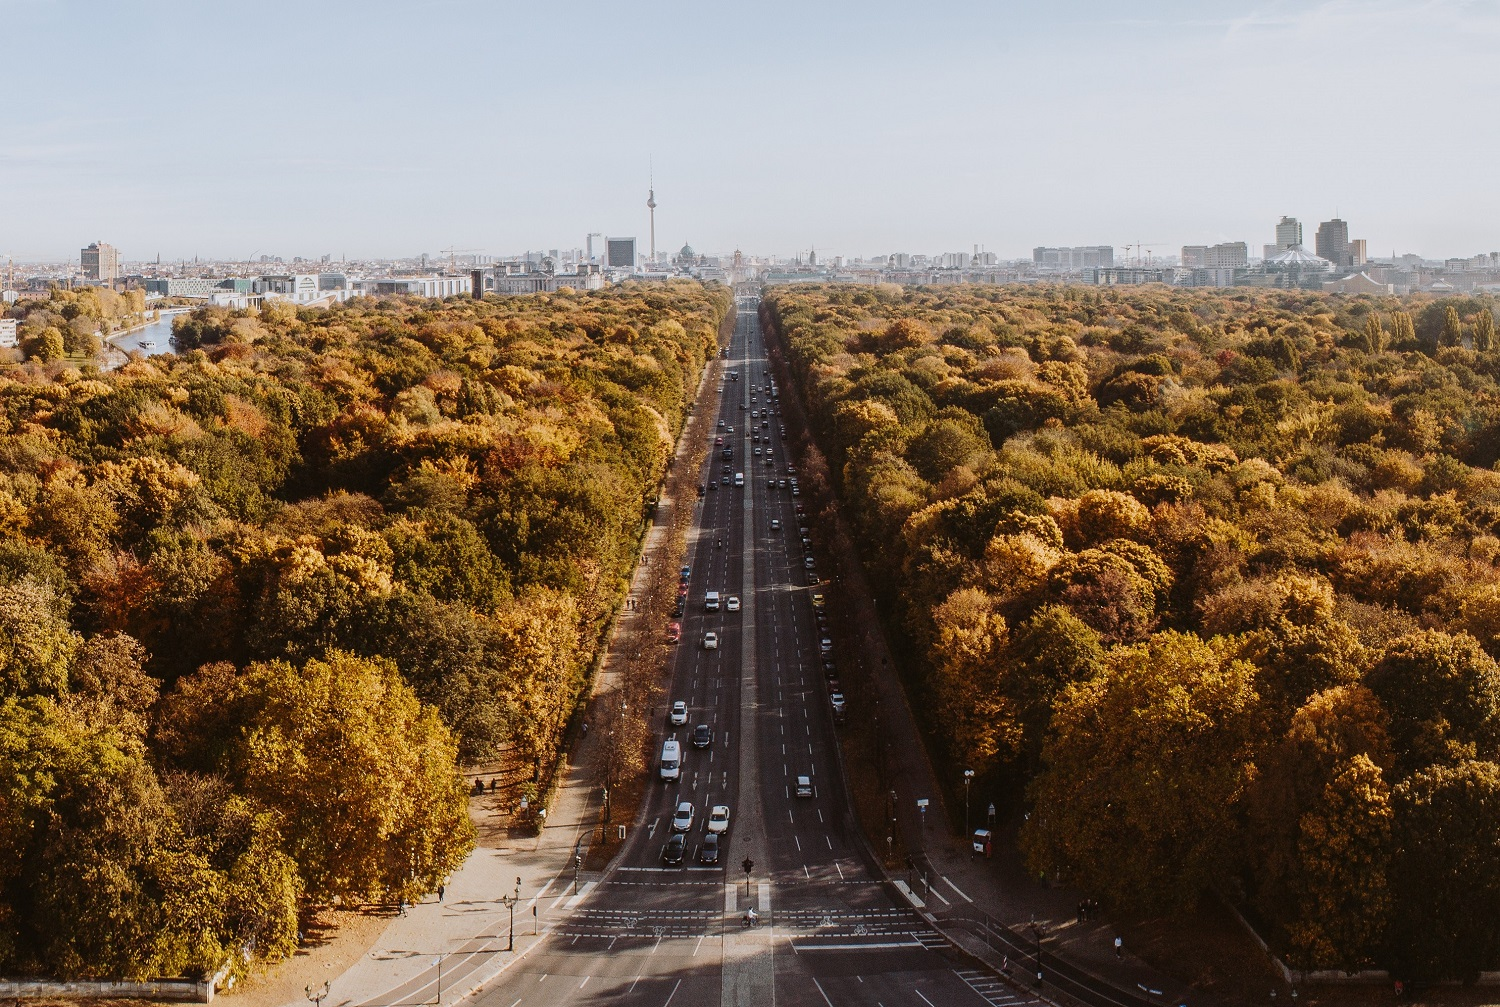 Berliners – We Have to Save our Trees From the Heat!